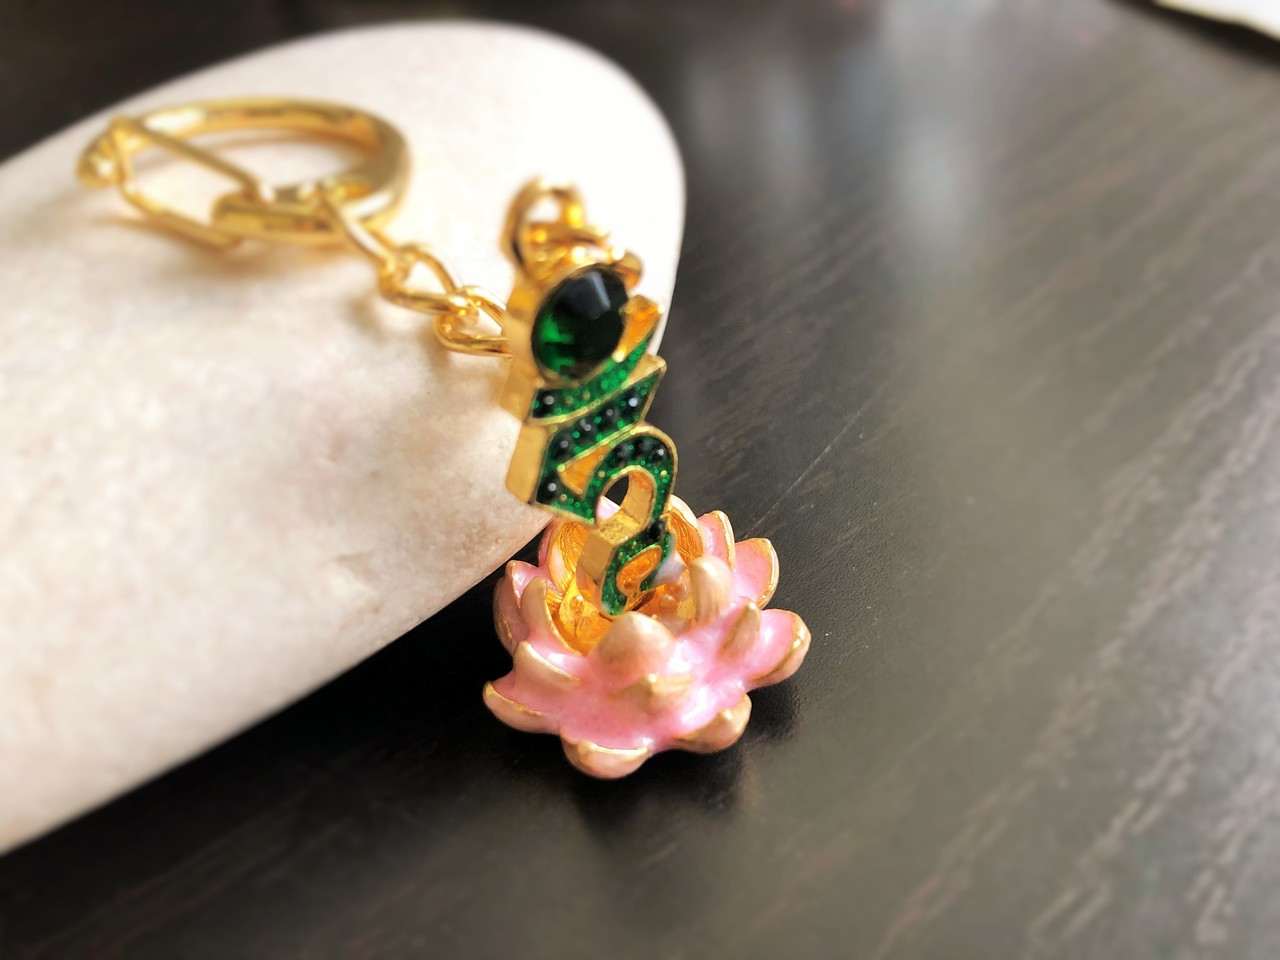 Feng Shui Bejeweled Tam Lotus Keychain Amulet